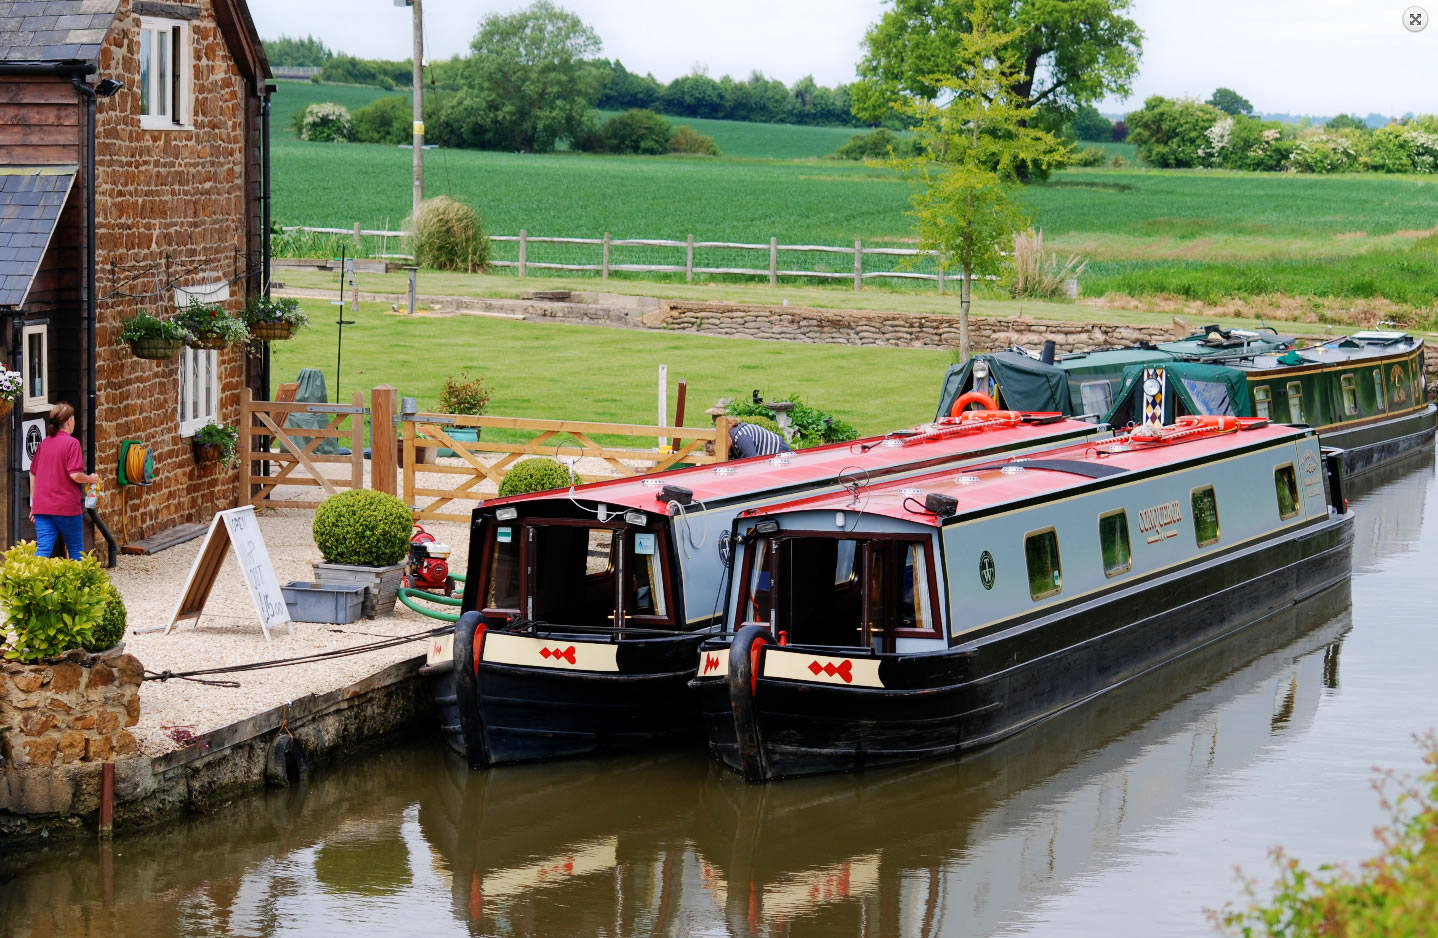 The Twyford class canal boat